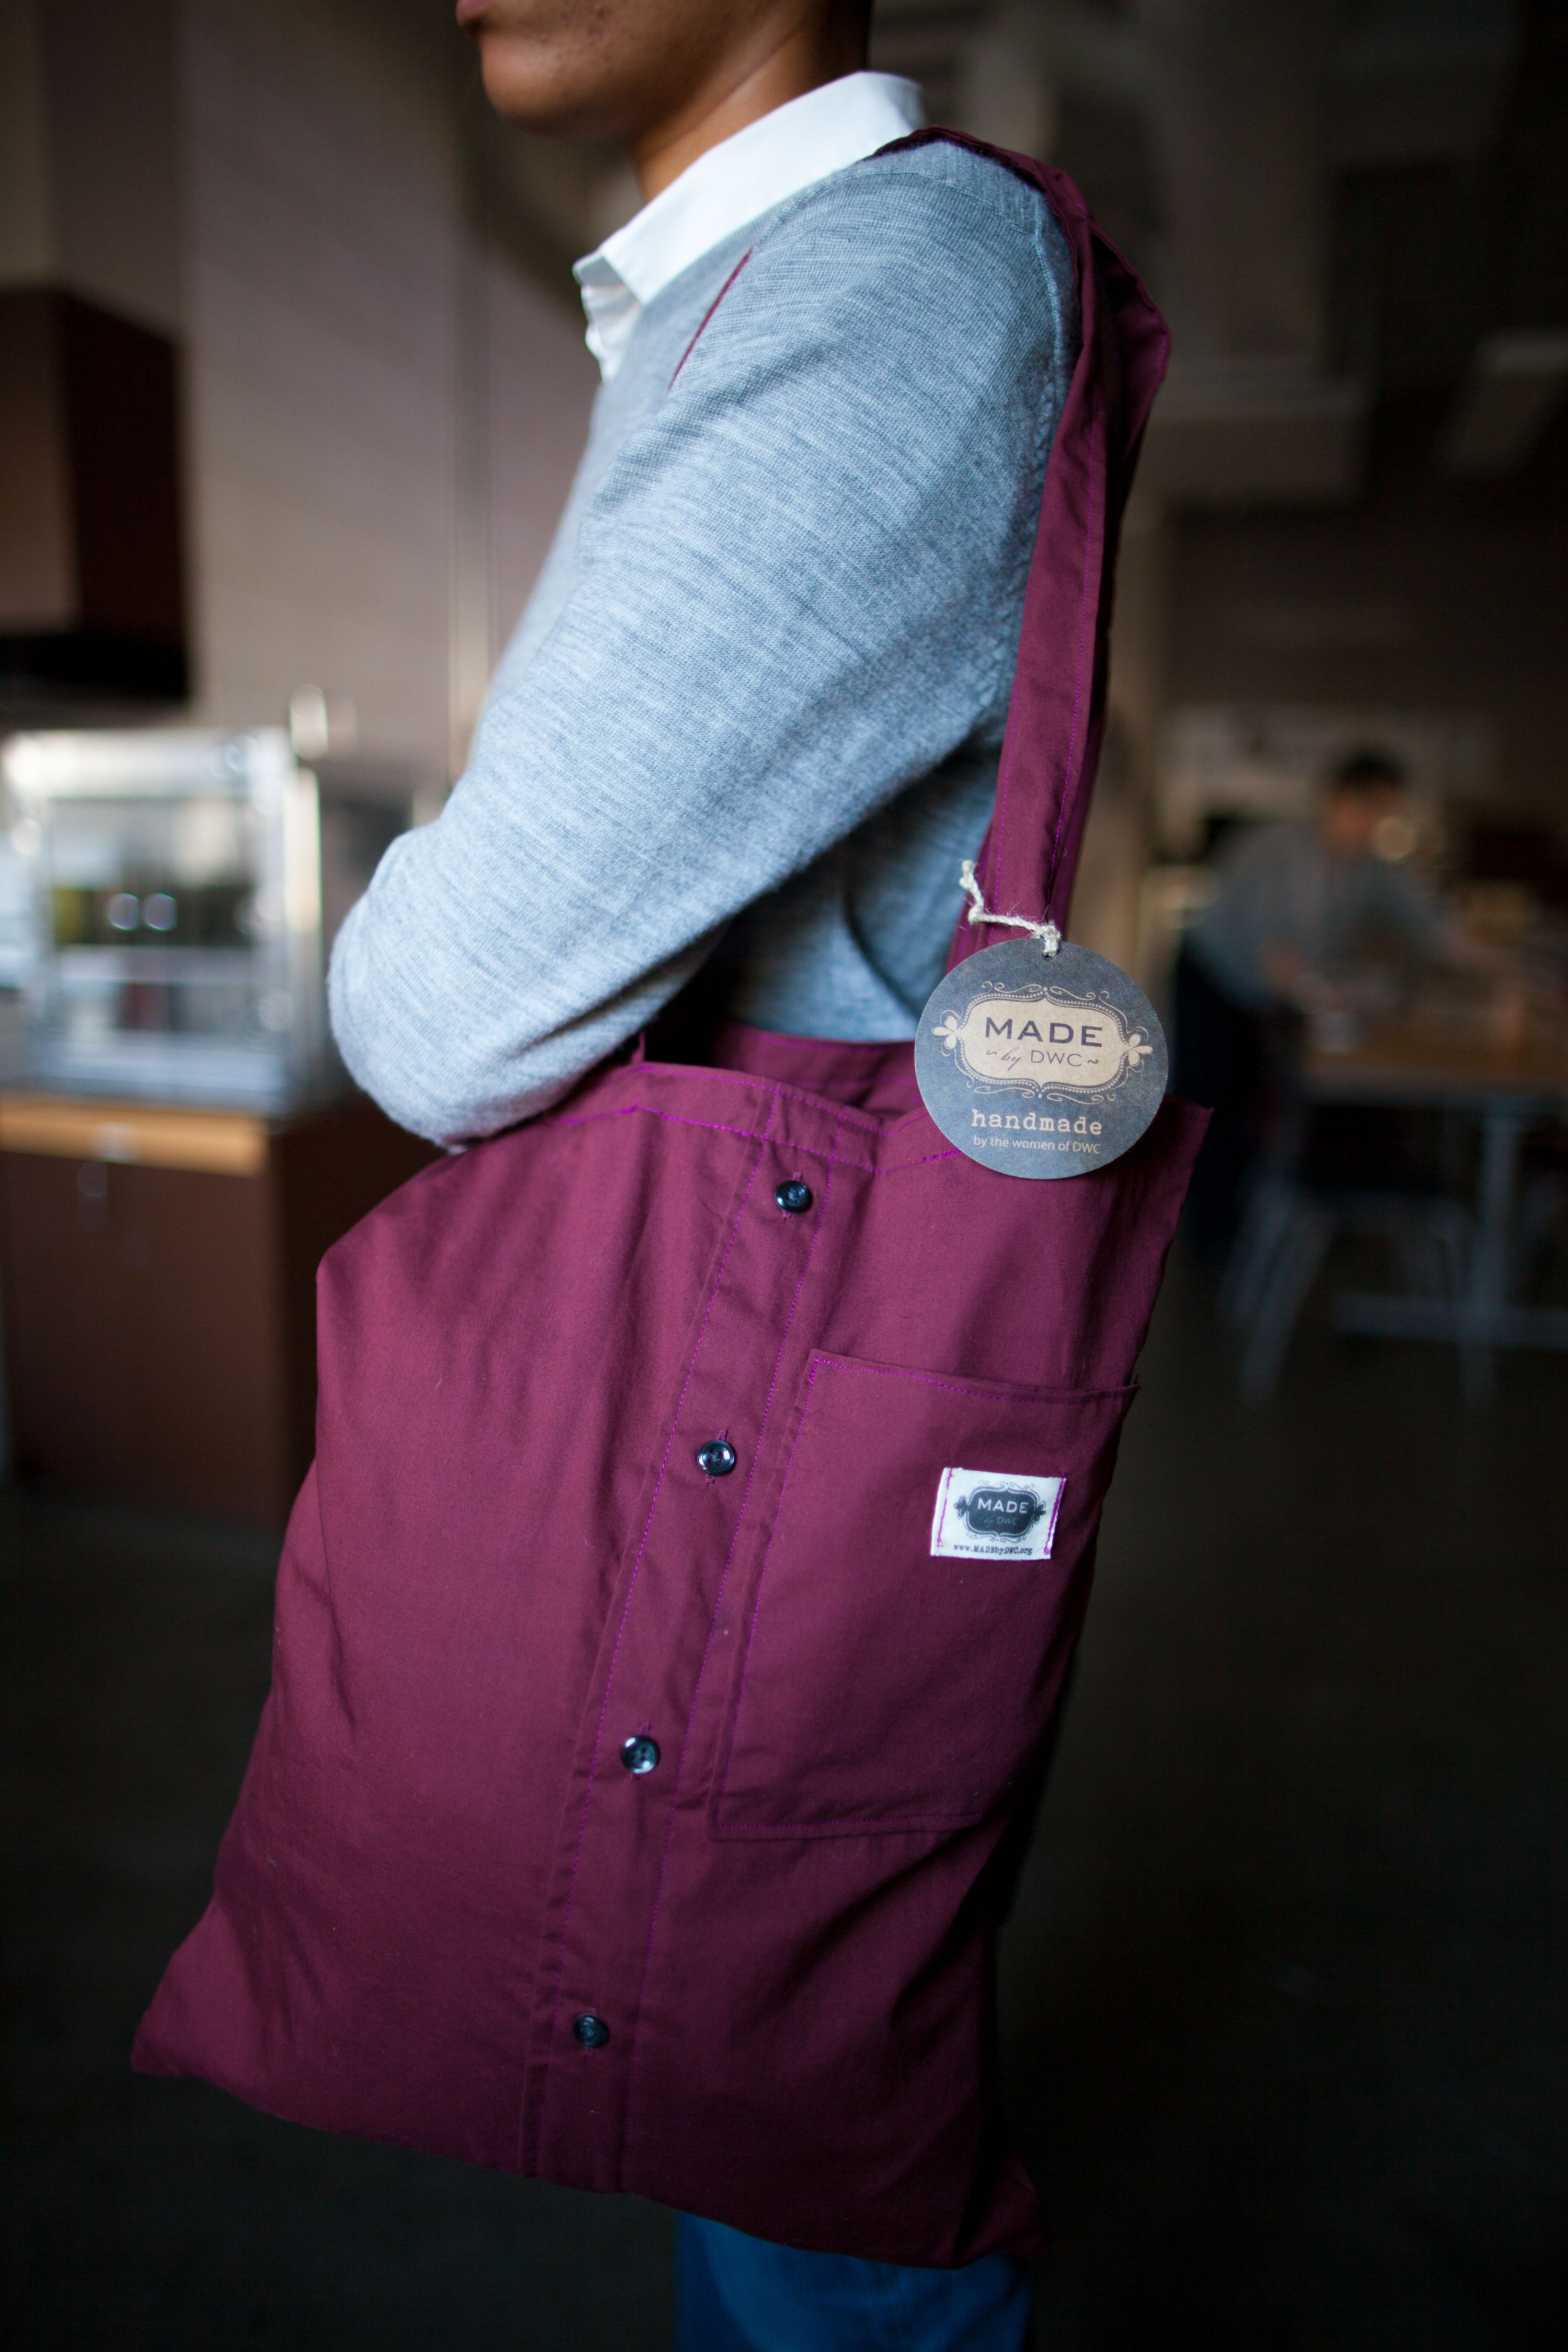 Check out our BRAND NEW reclaimed shirt bags! Sling one over your shoulder and carry your notebooks or wallet in this soft but durable bag handMADE by the women of DWC! www.madebydwc.org